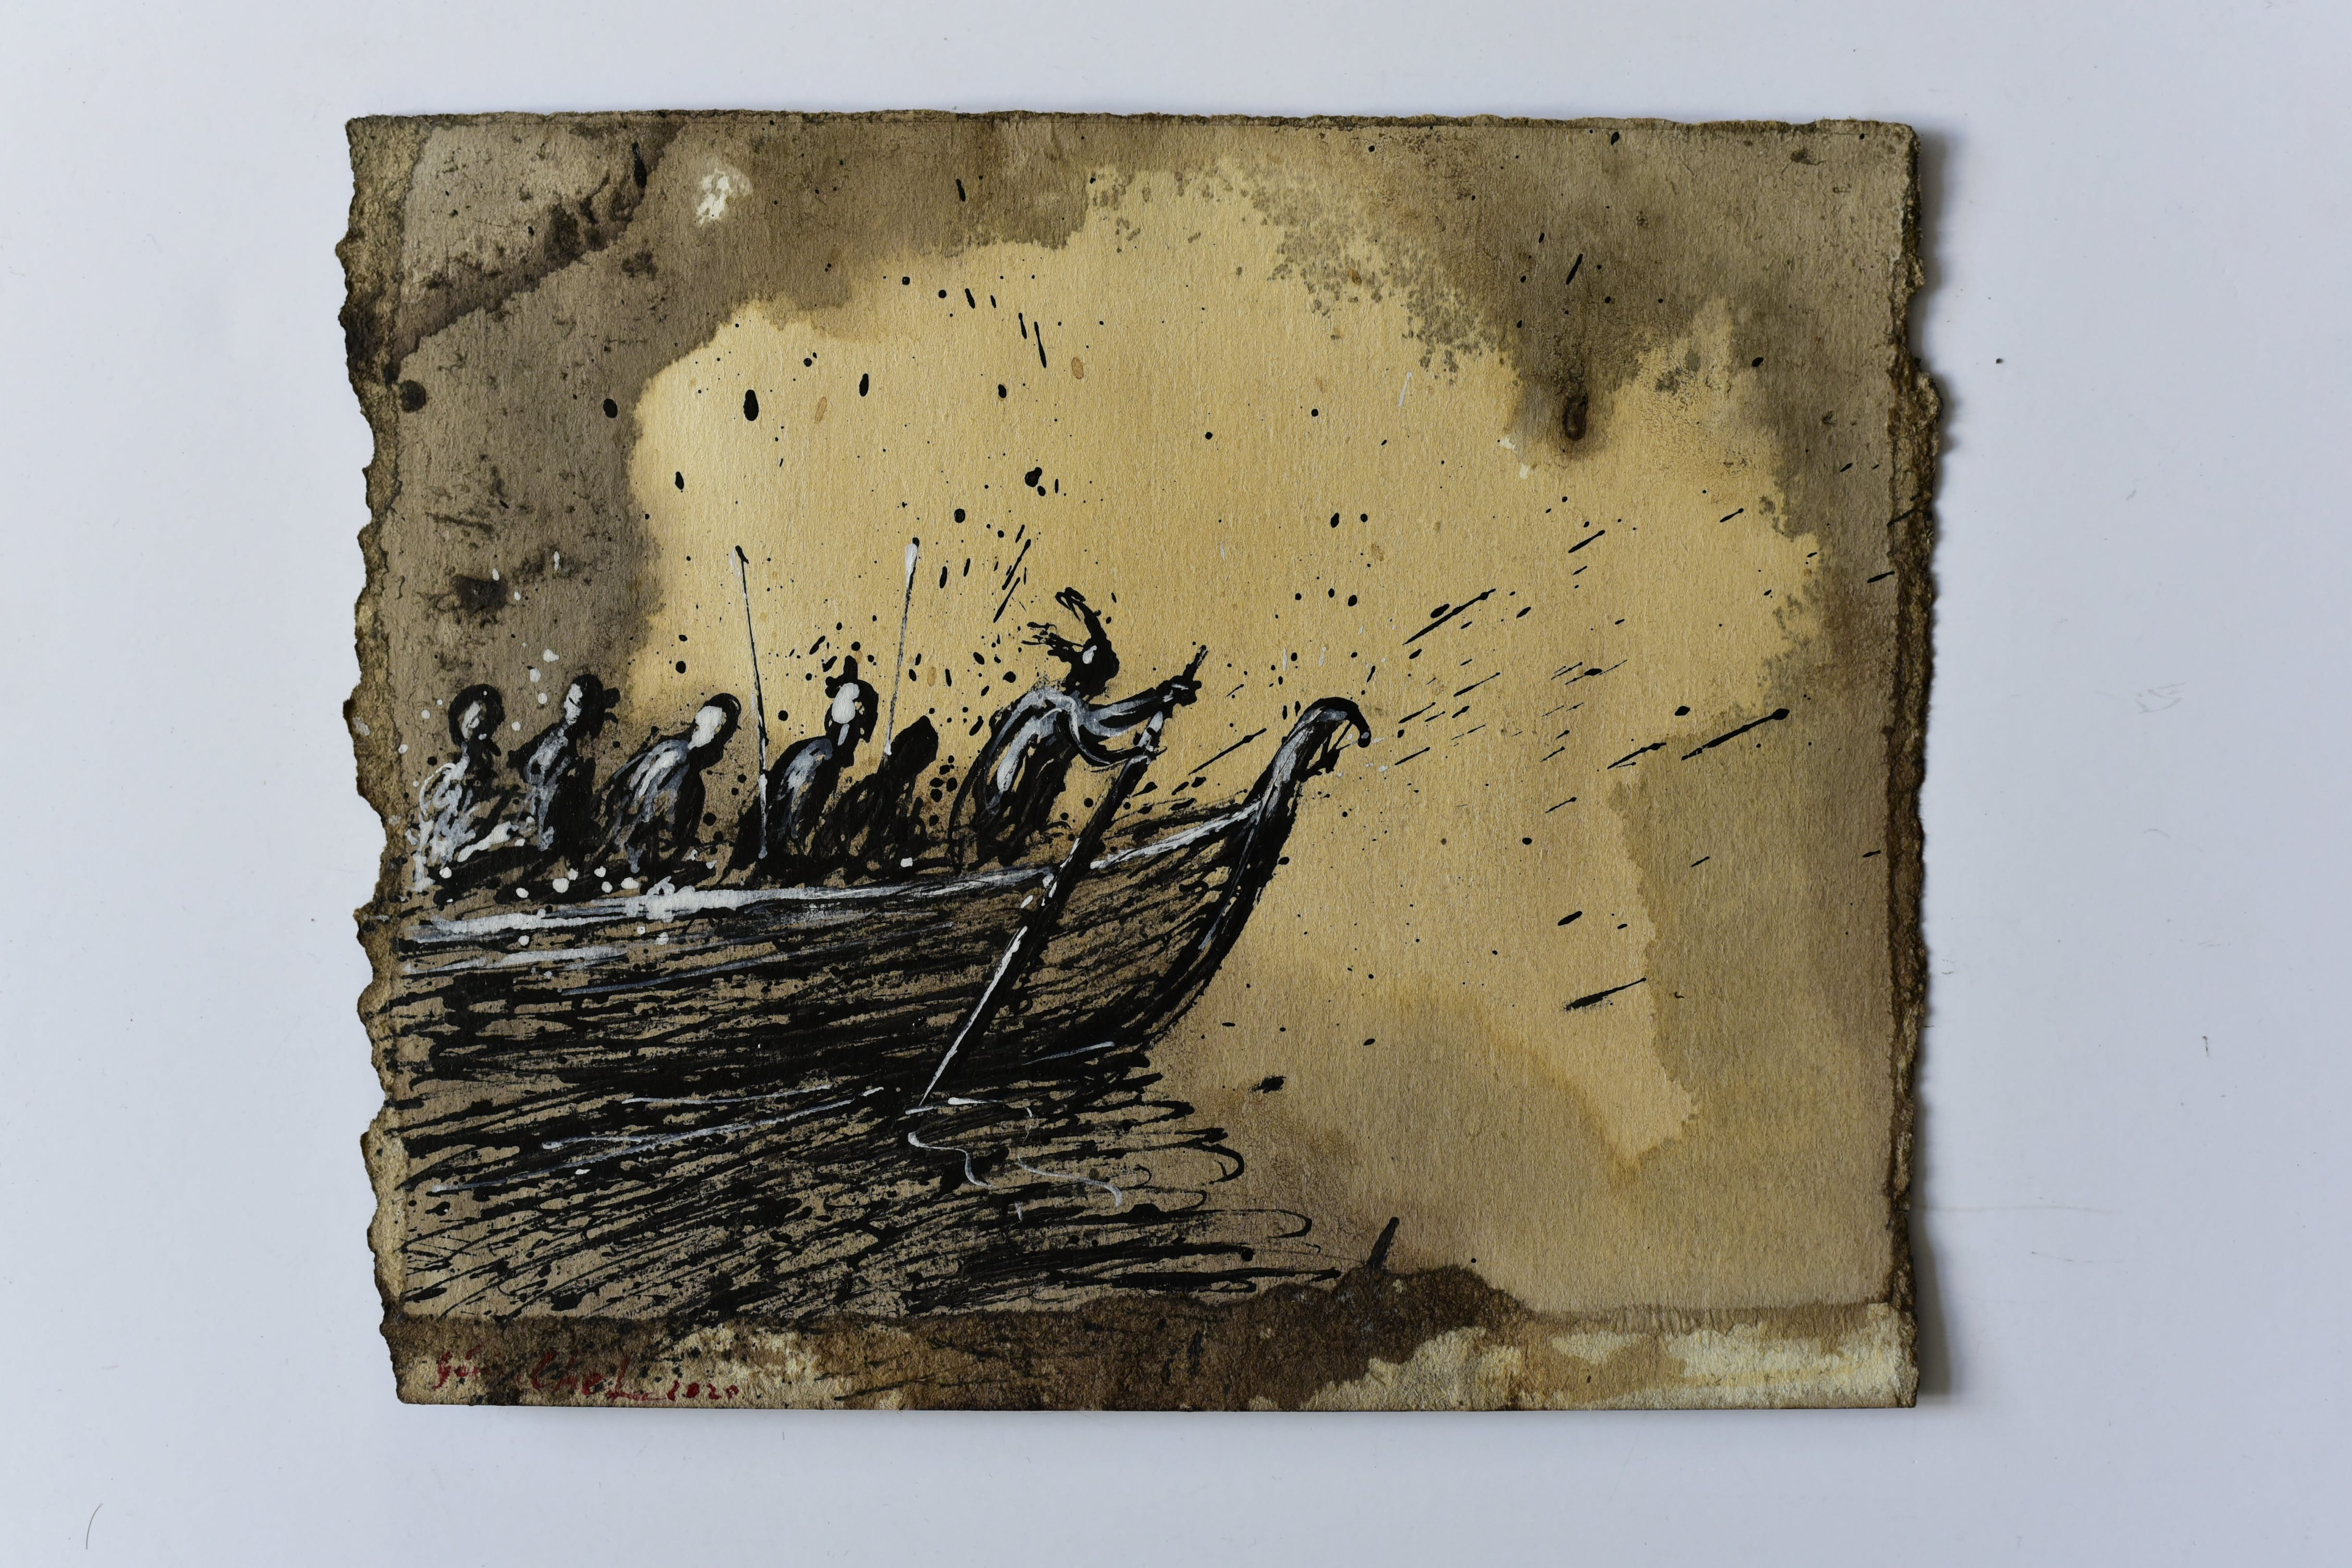 Genia Chef, Aventiure XXV, 1572, Hagen steers the boat of the Burgundians on the way to King Etzel, mixed media on paper, 2020, 18,5 x 23,5 cm